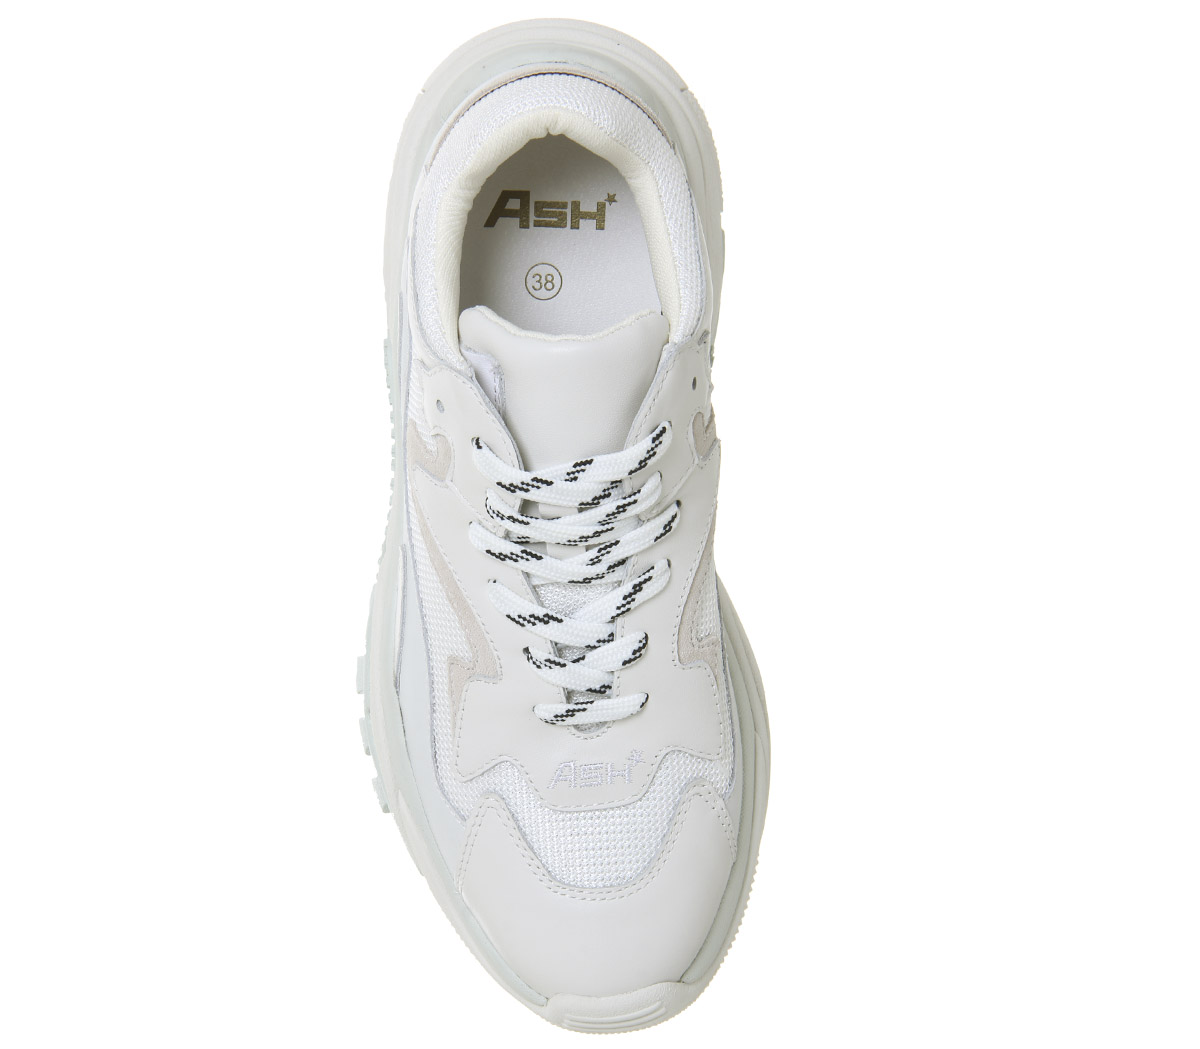 0df8a45a5f18b Womens Ash Addict Sneakers White Off White Trainers Shoes